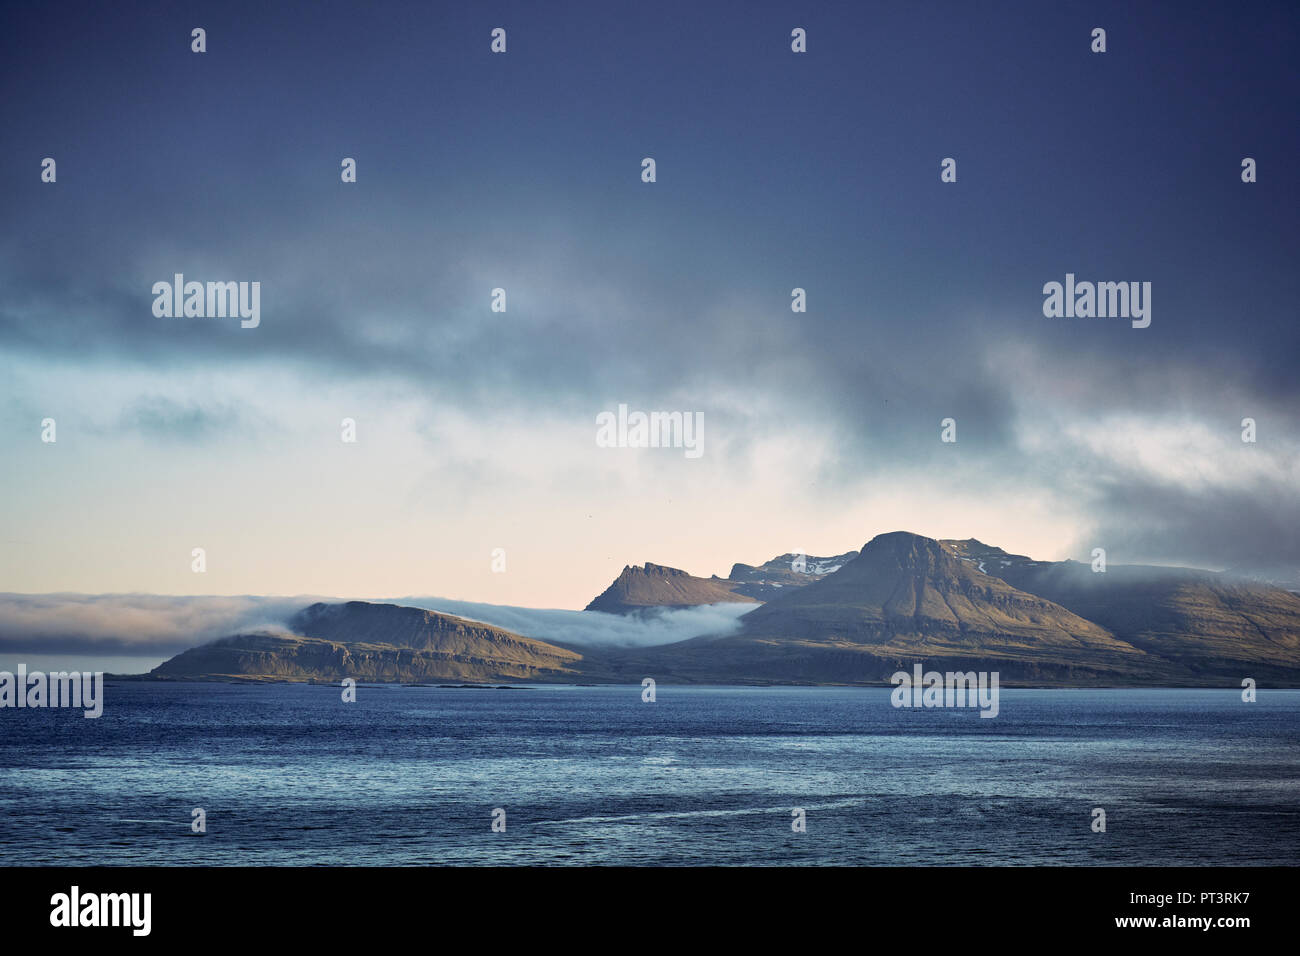 The rugged landscape of the East Fjords region of Iceland. - Stock Image